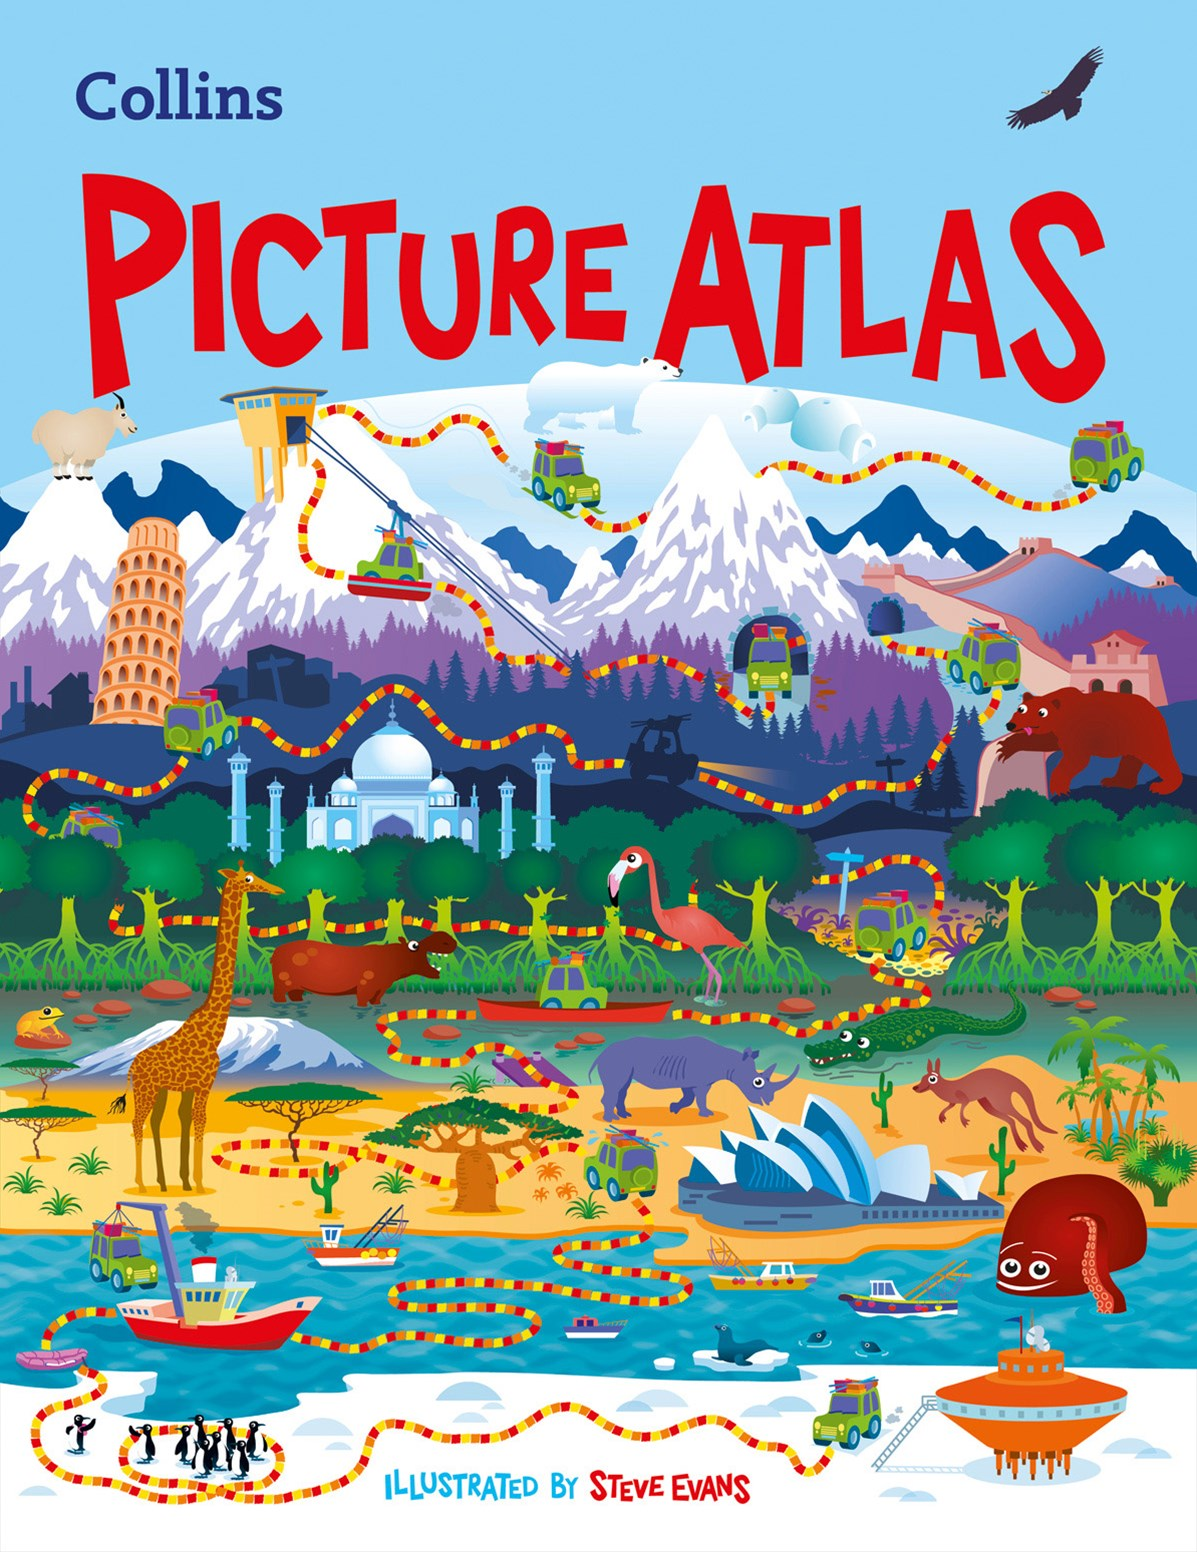 Collins Children's Picture Atlas [2nd Edition]